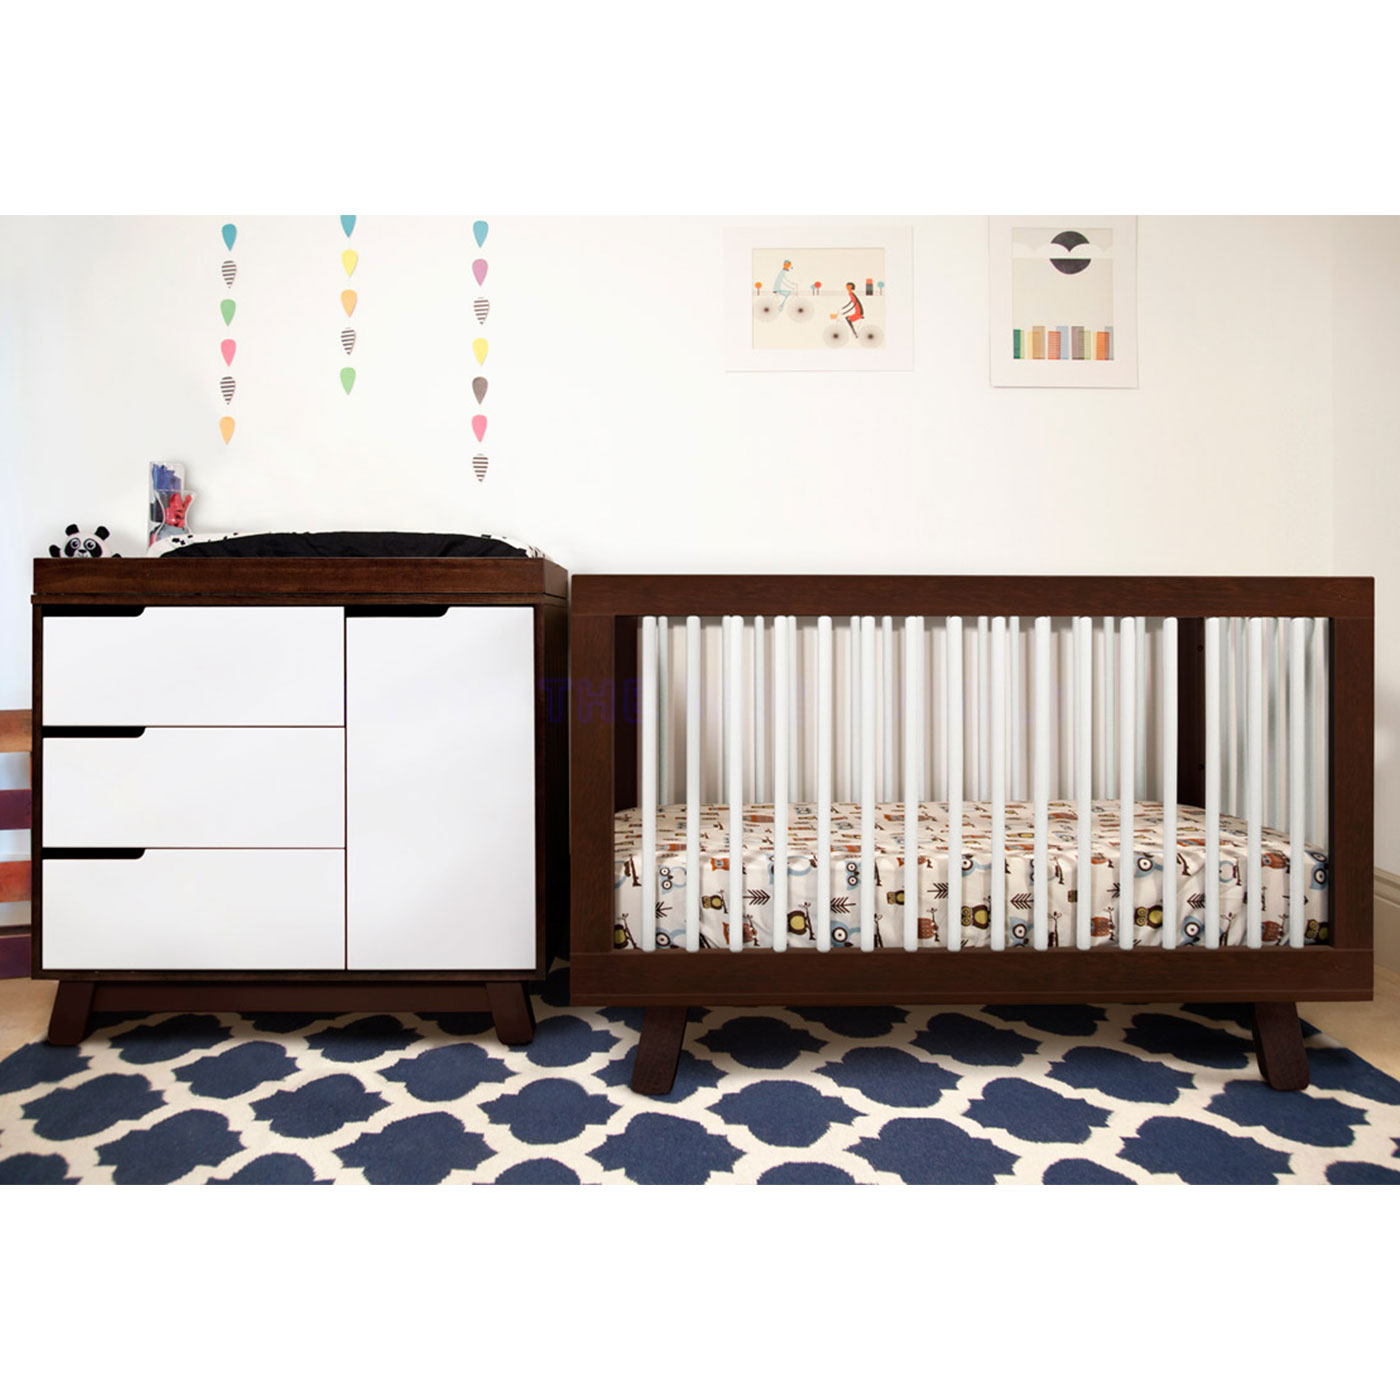 mattress davinci babyletto set grey crib cribs reviews beautiful in mini white of modo amp convertible fresh kalani